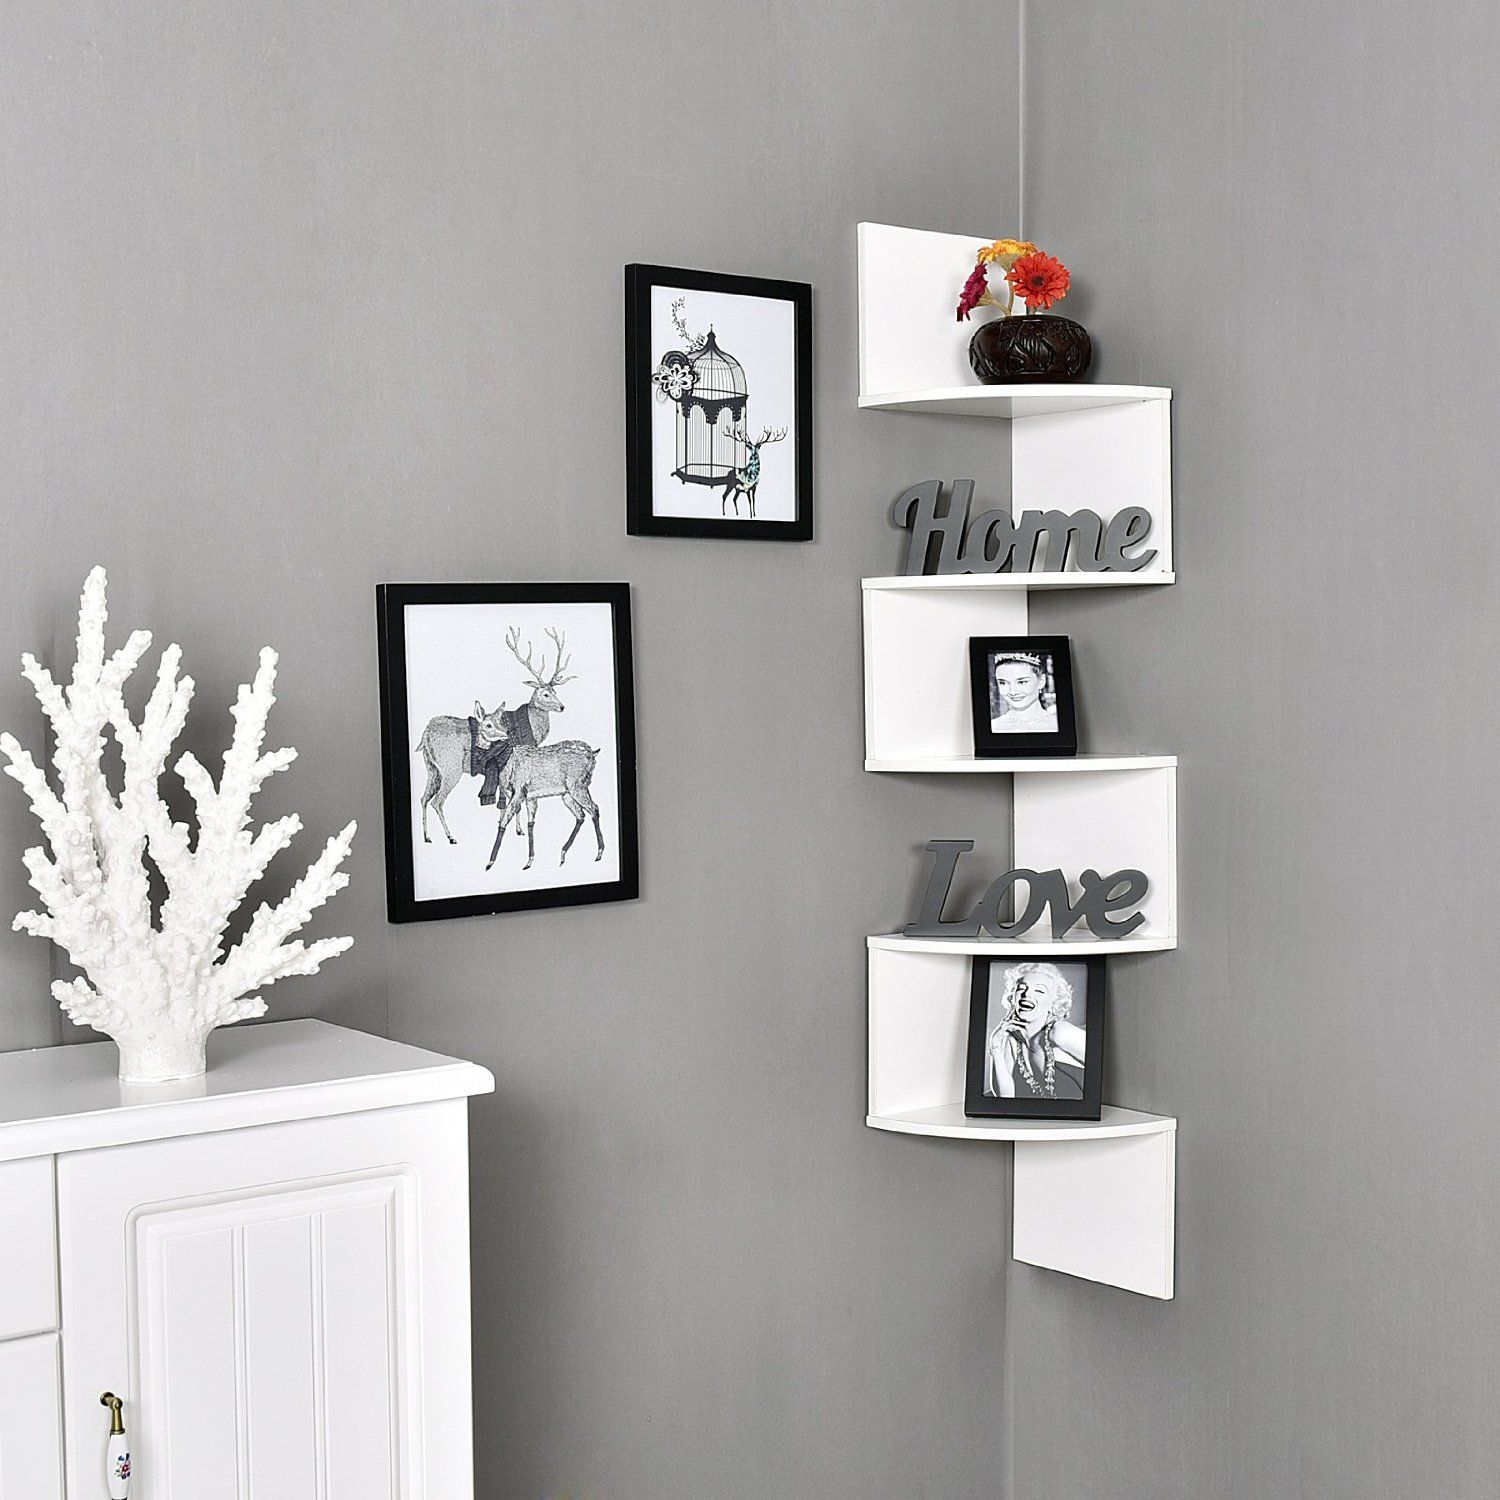 Large 10 X 10 Inches Zig Zag 5 Tiers Corner Wall Mount Shelf White Zig Zag Corner Wall Mount Shelf Makes Space Utili Wall Shelves Shelves